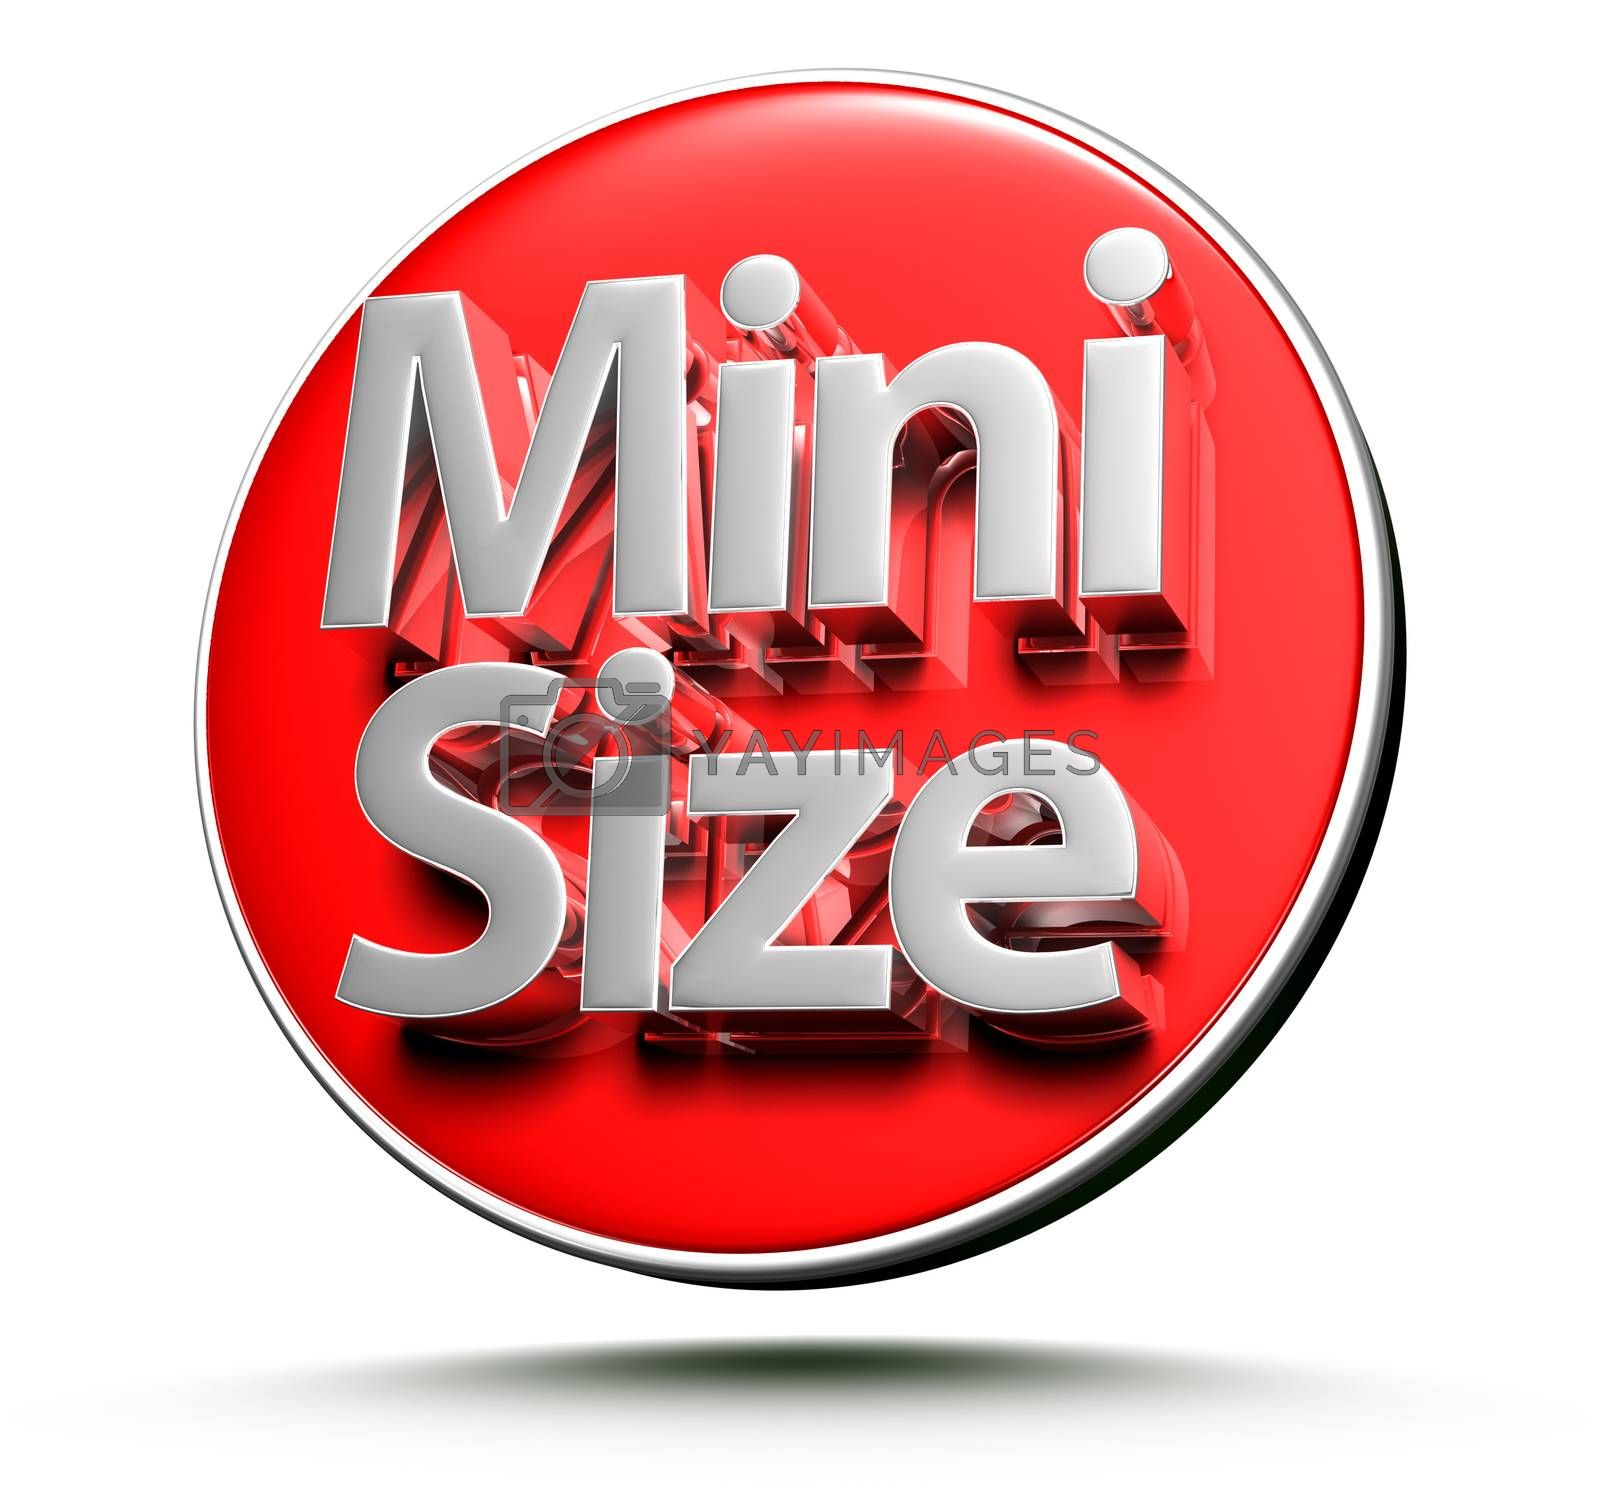 Signs Mini size 3d. by thitimon